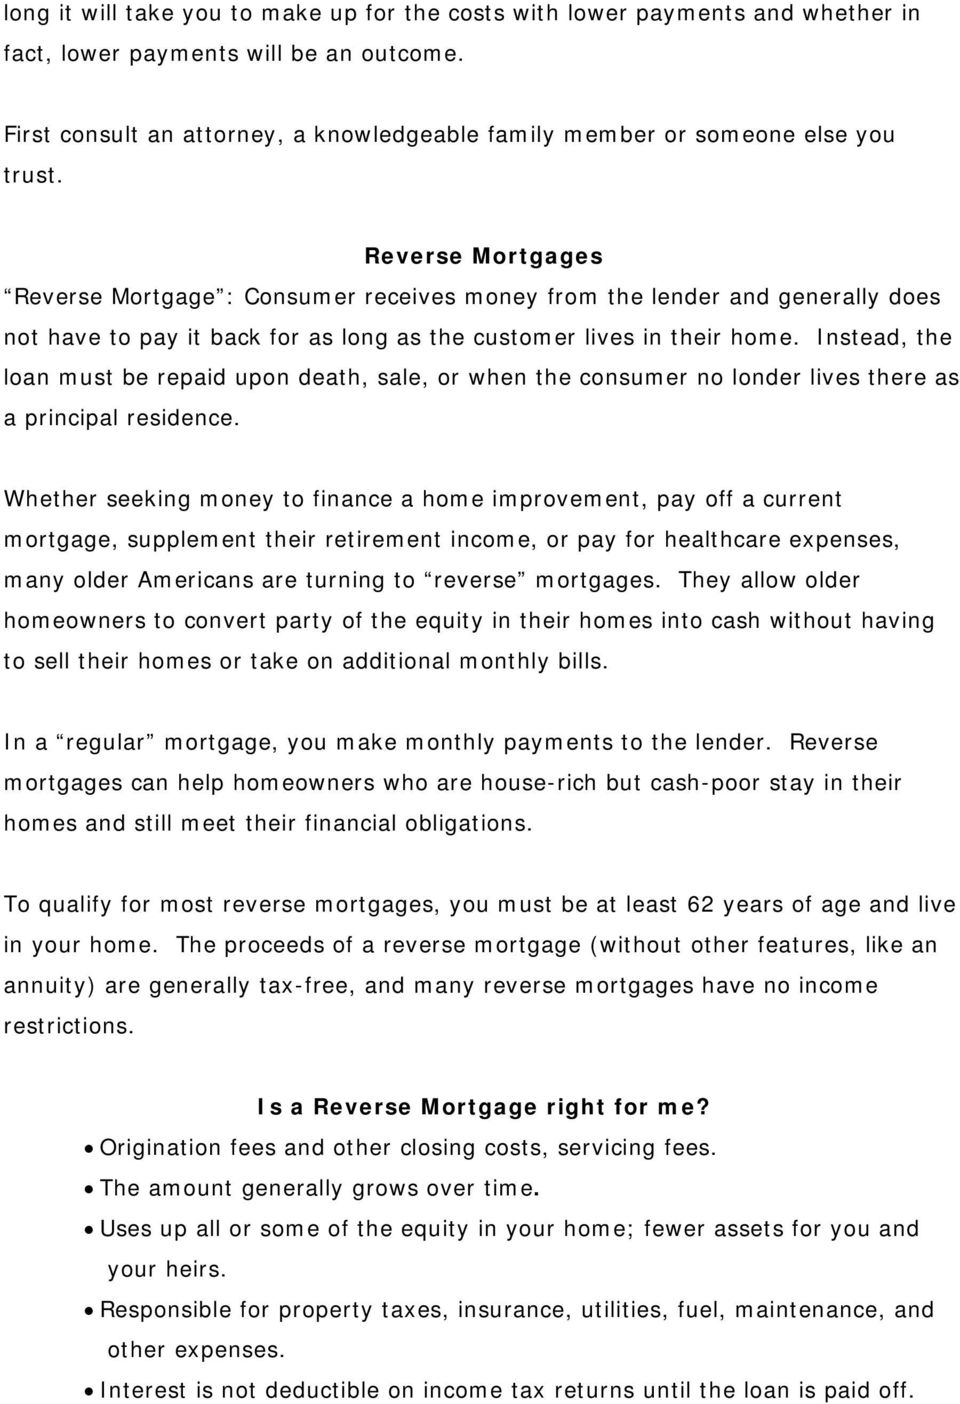 Reverse Mortgages Reverse Mortgage : Consumer receives money from the lender and generally does not have to pay it back for as long as the customer lives in their home.